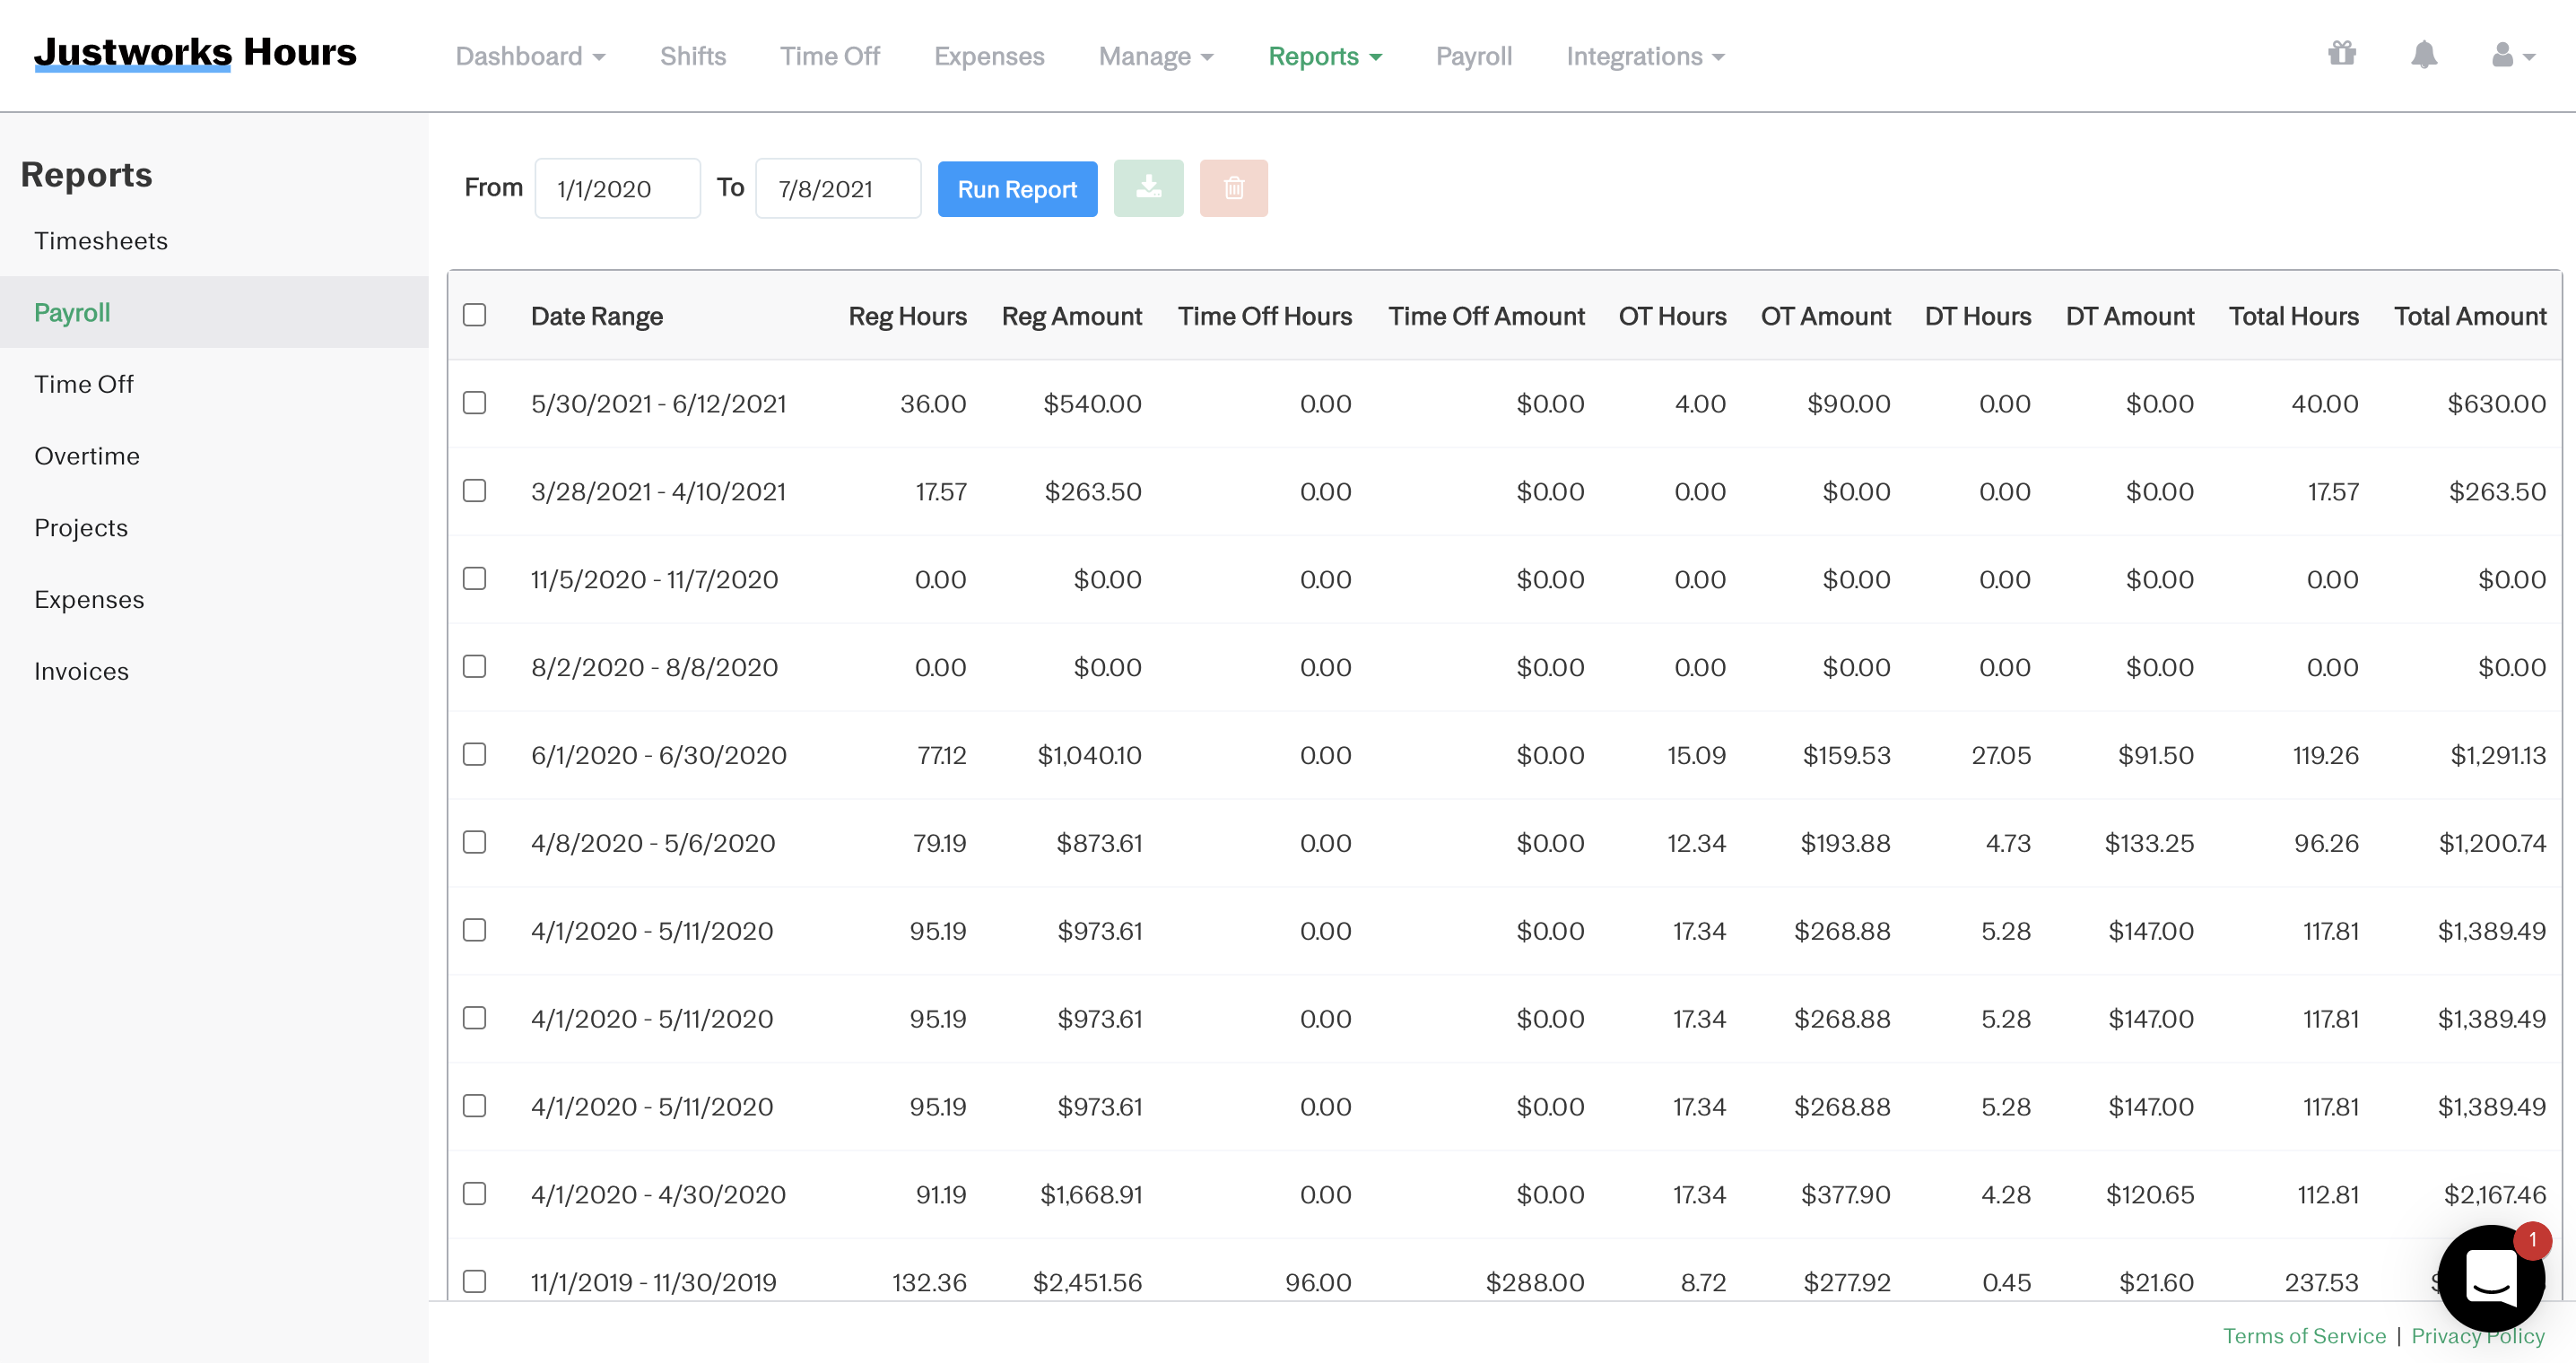 Screenshot showing a tabulated version of the payroll report